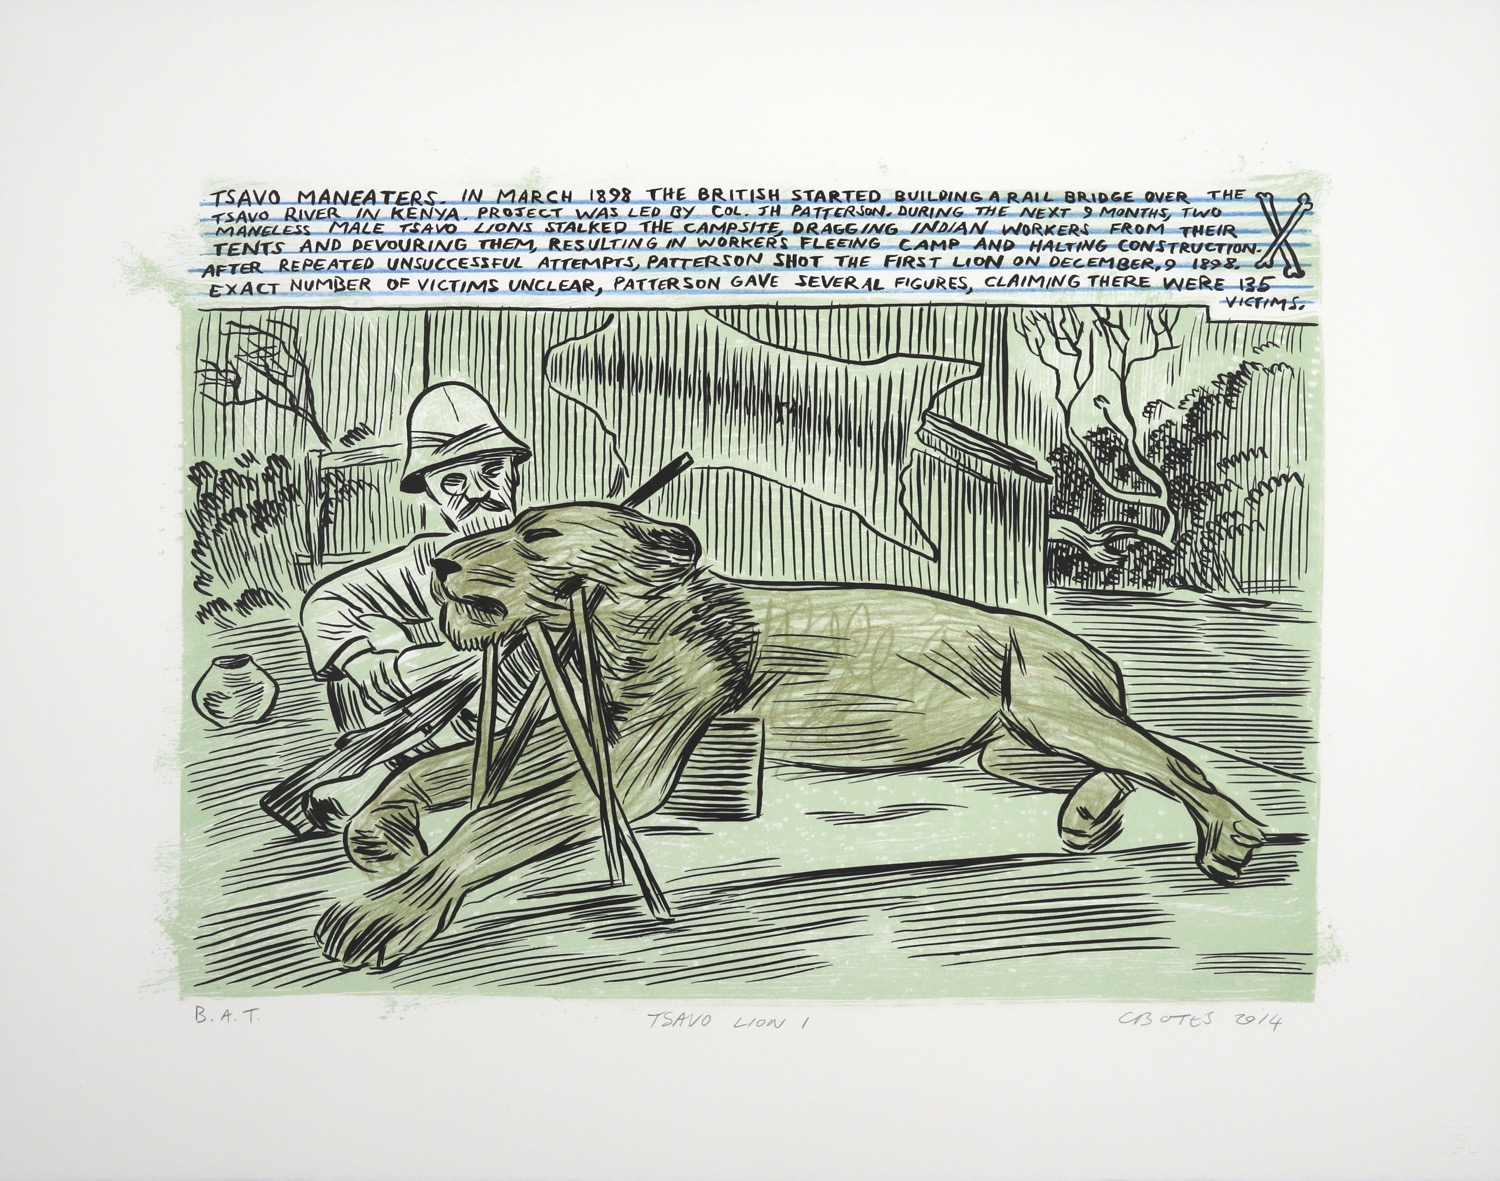 Dead lion propped up in front of hunter with pith helmet, drawn in comic style with explanatory text